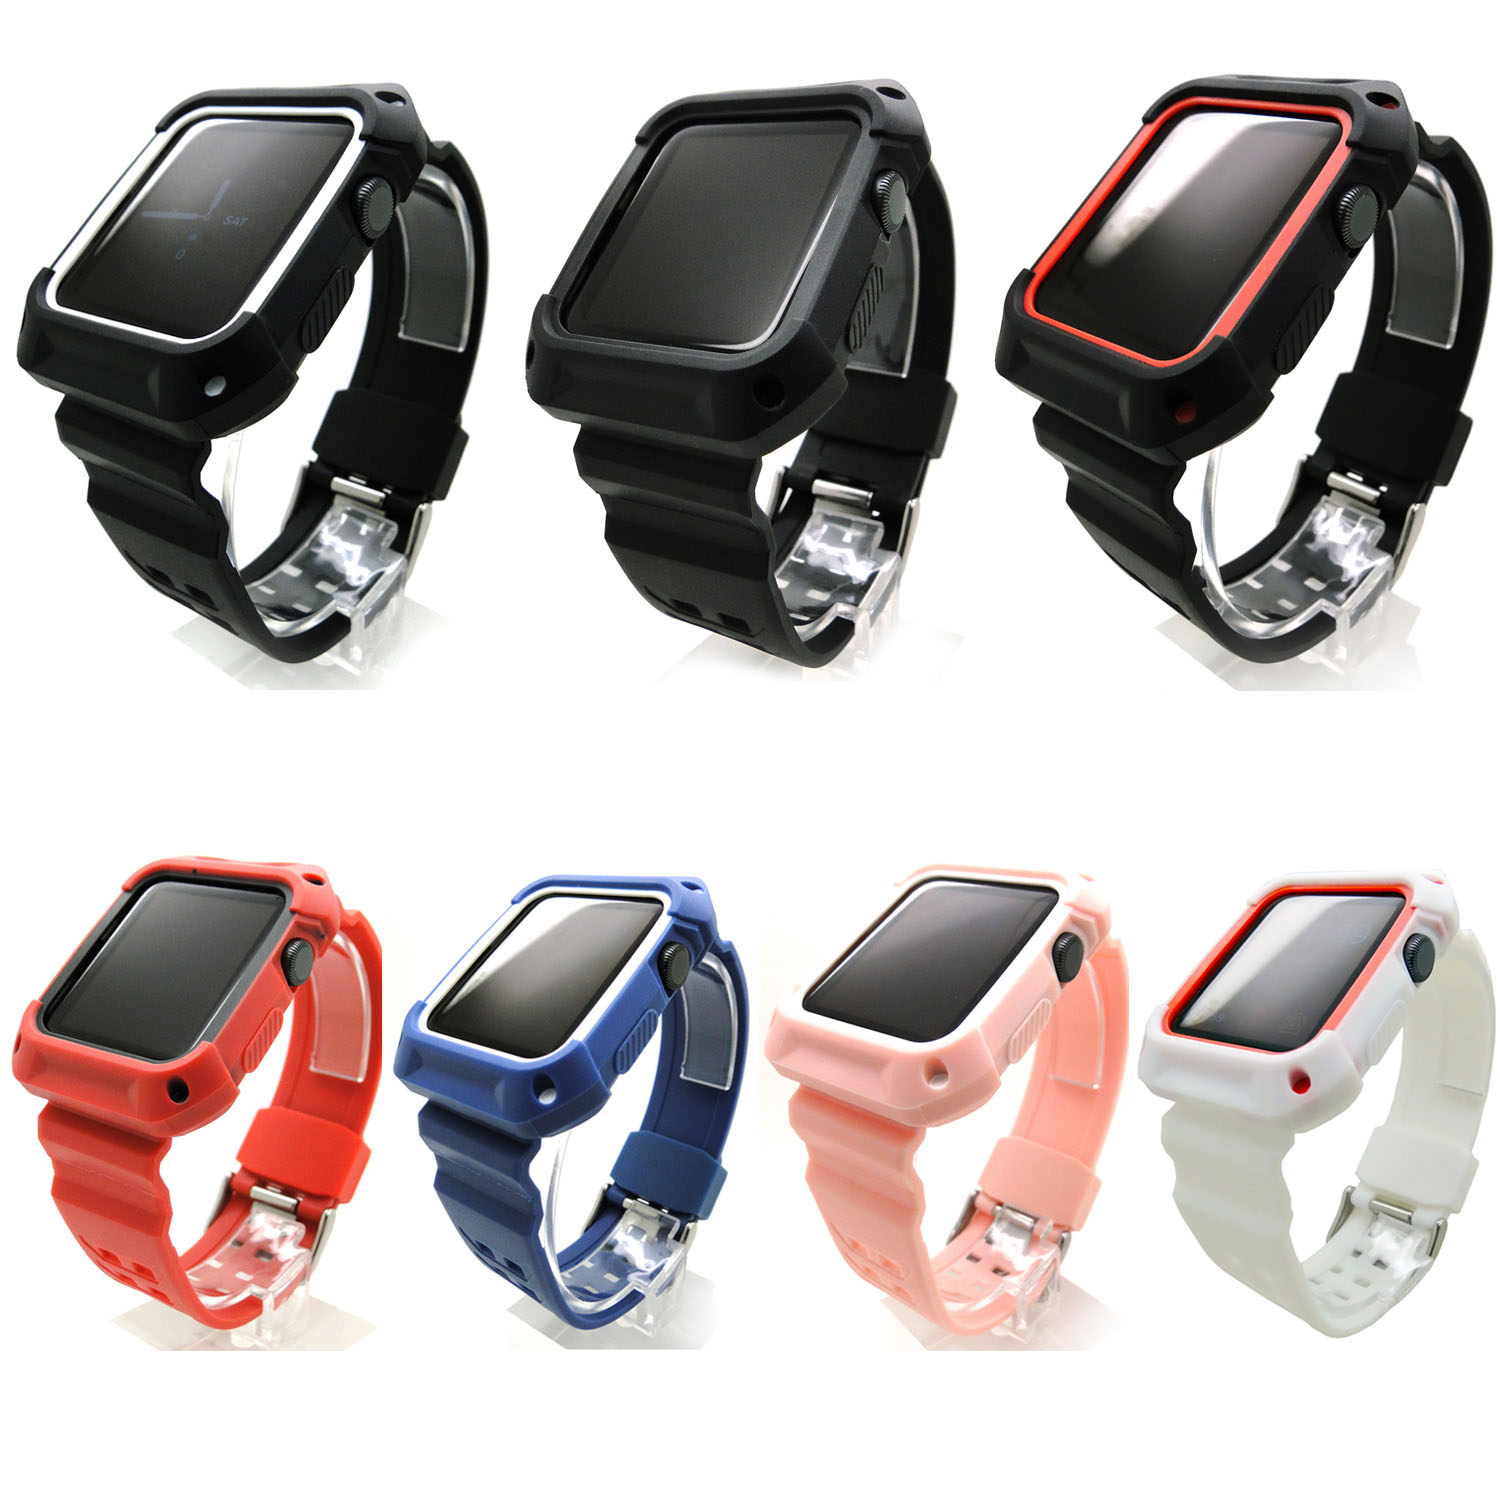 Colorful Silicone Watch Band with Rugged Protective Case Cover for Apple Watch iWatch Series 1/2 Strap Bracelet 38mm 42mm eache silicone watch band strap replacement watch band can fit for swatch 17mm 19mm men women